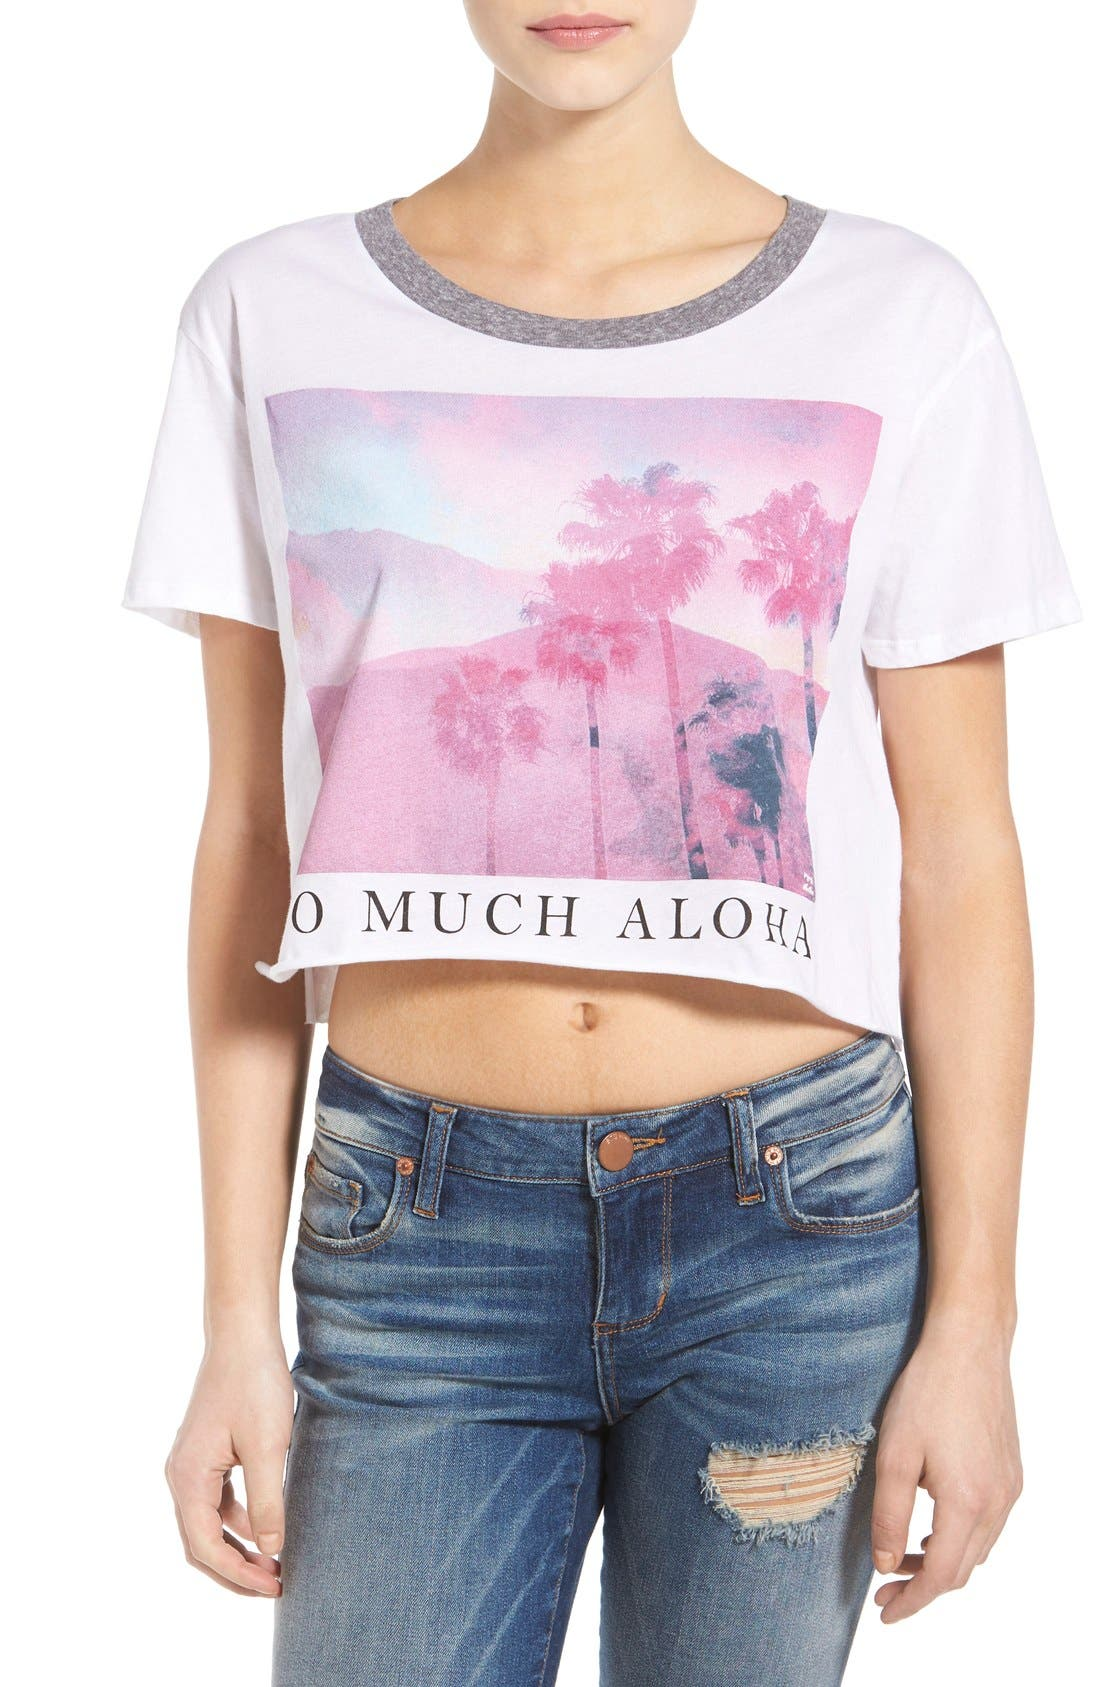 Main Image - Billabong 'So Much Aloha' Graphic Crop Tee